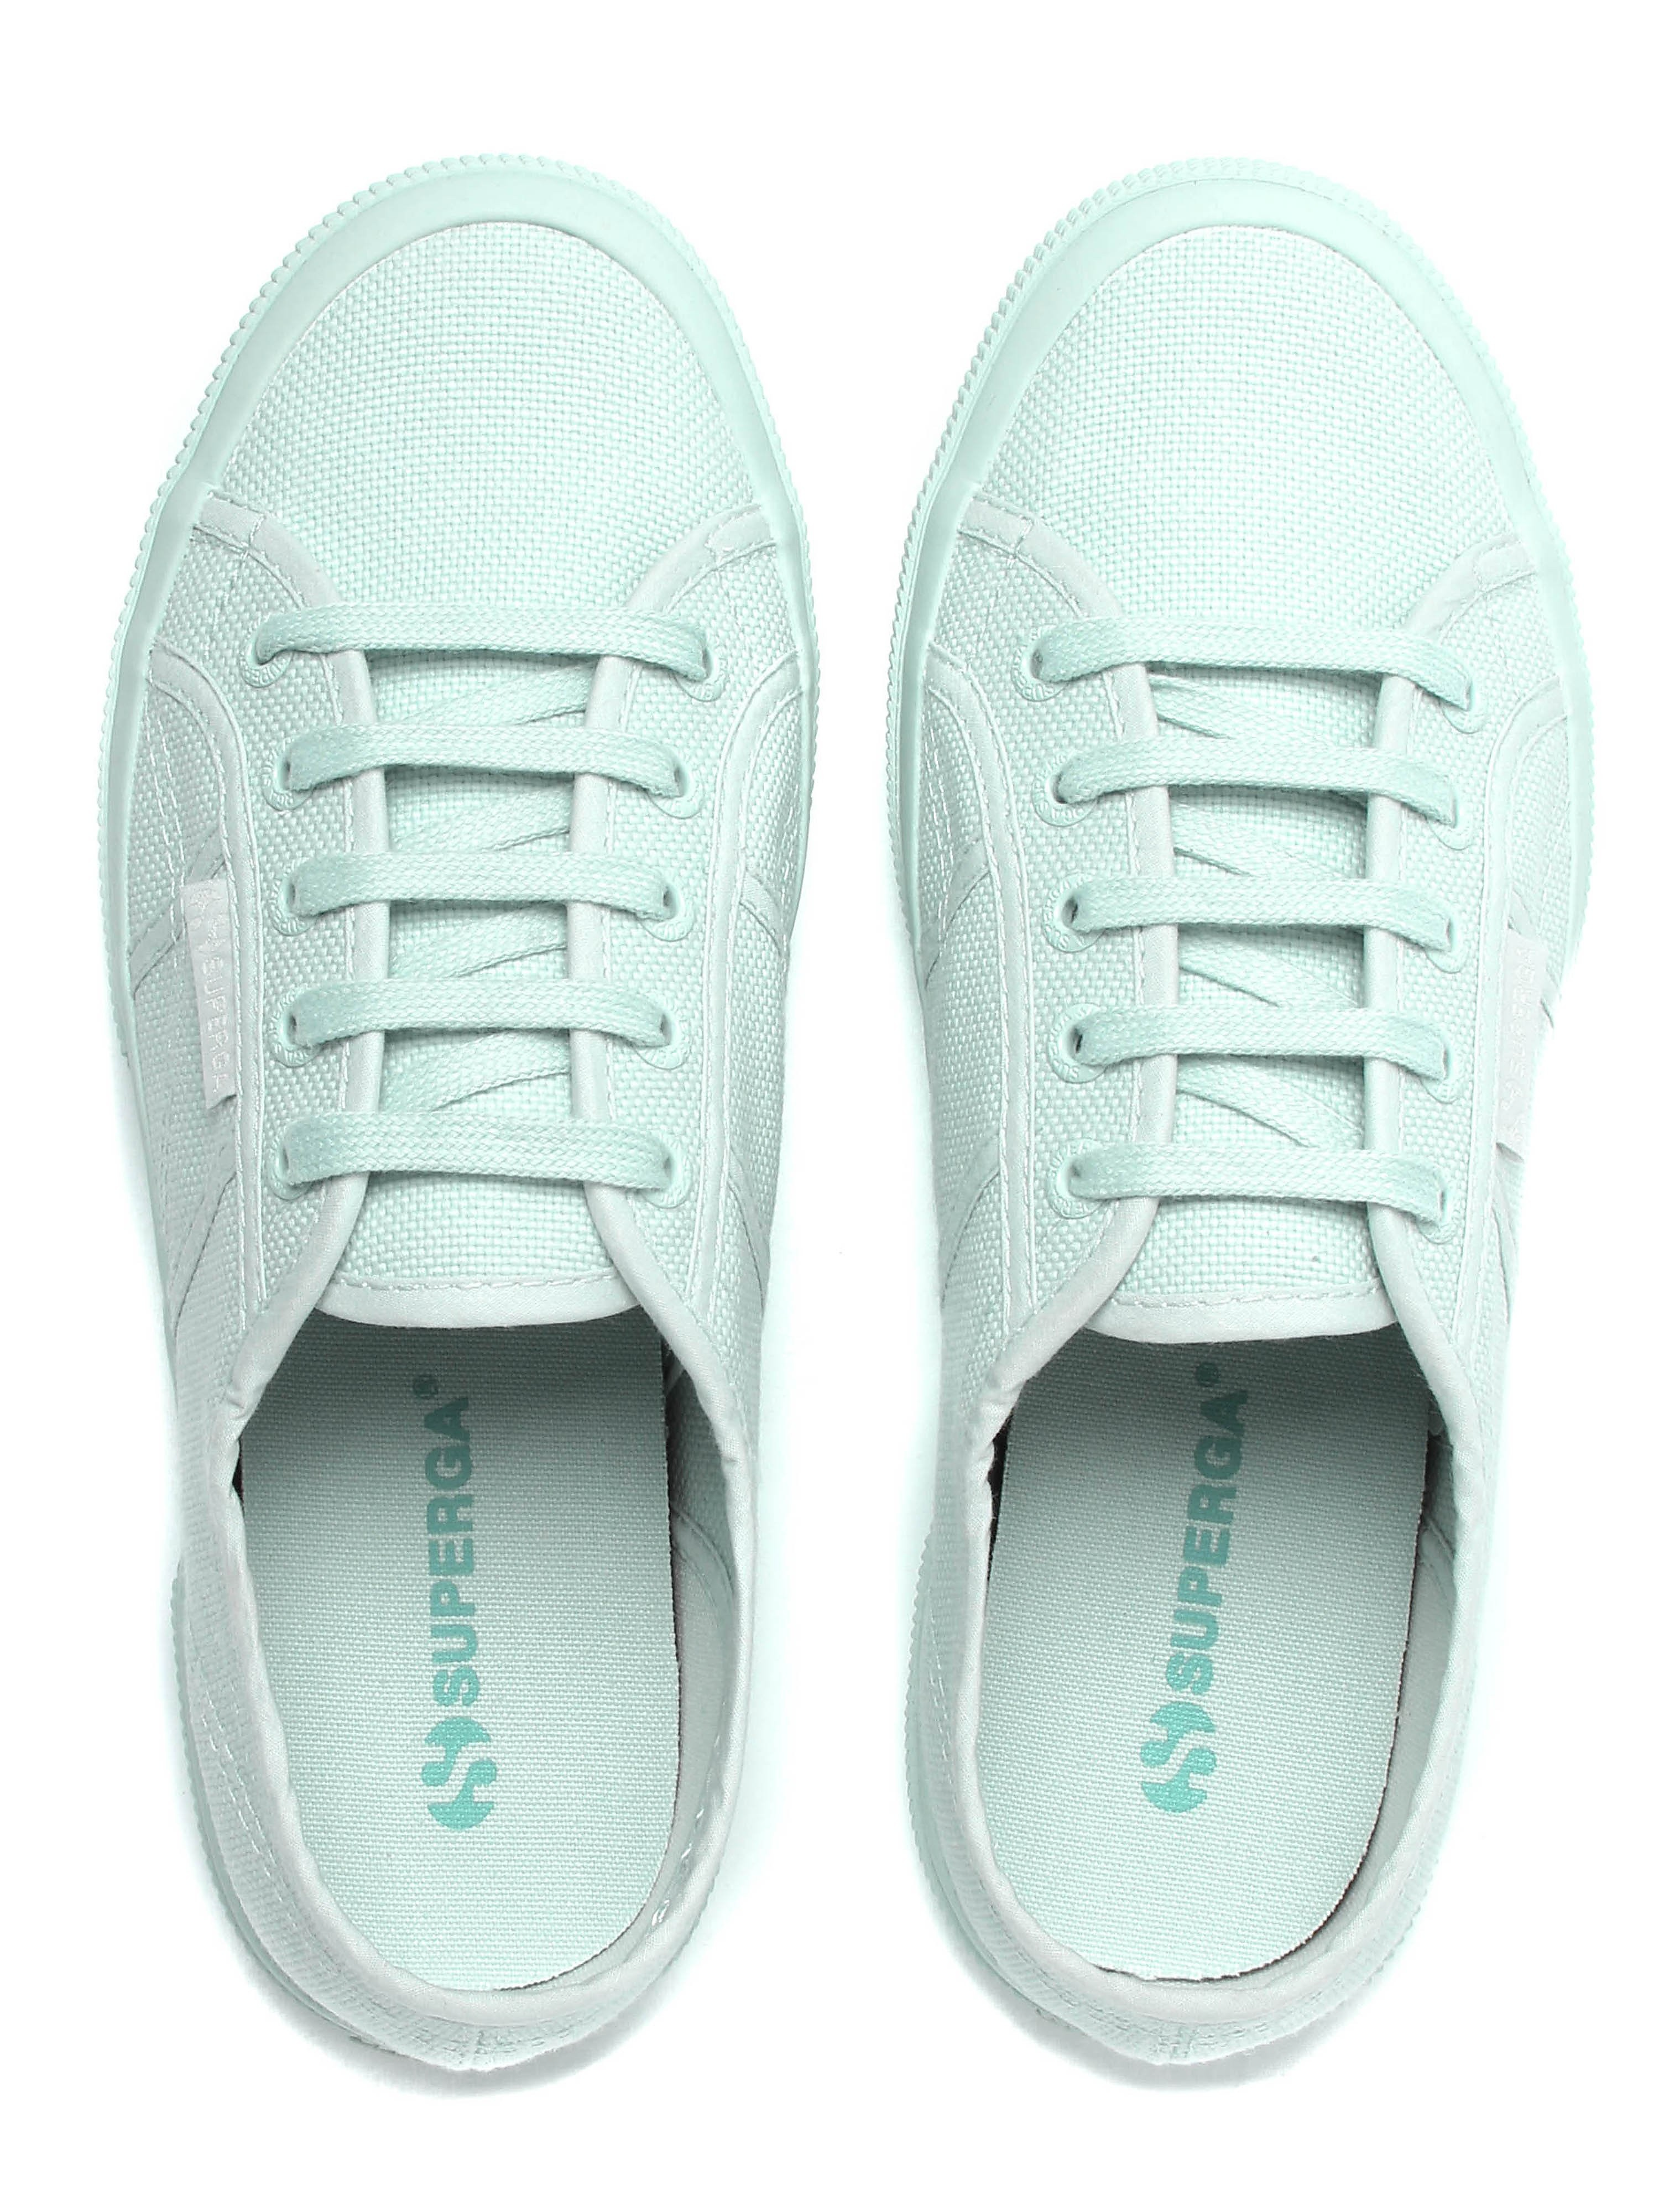 Superga Women's 2750 Cotu Classics Canvas Trainers - Total Azzurro